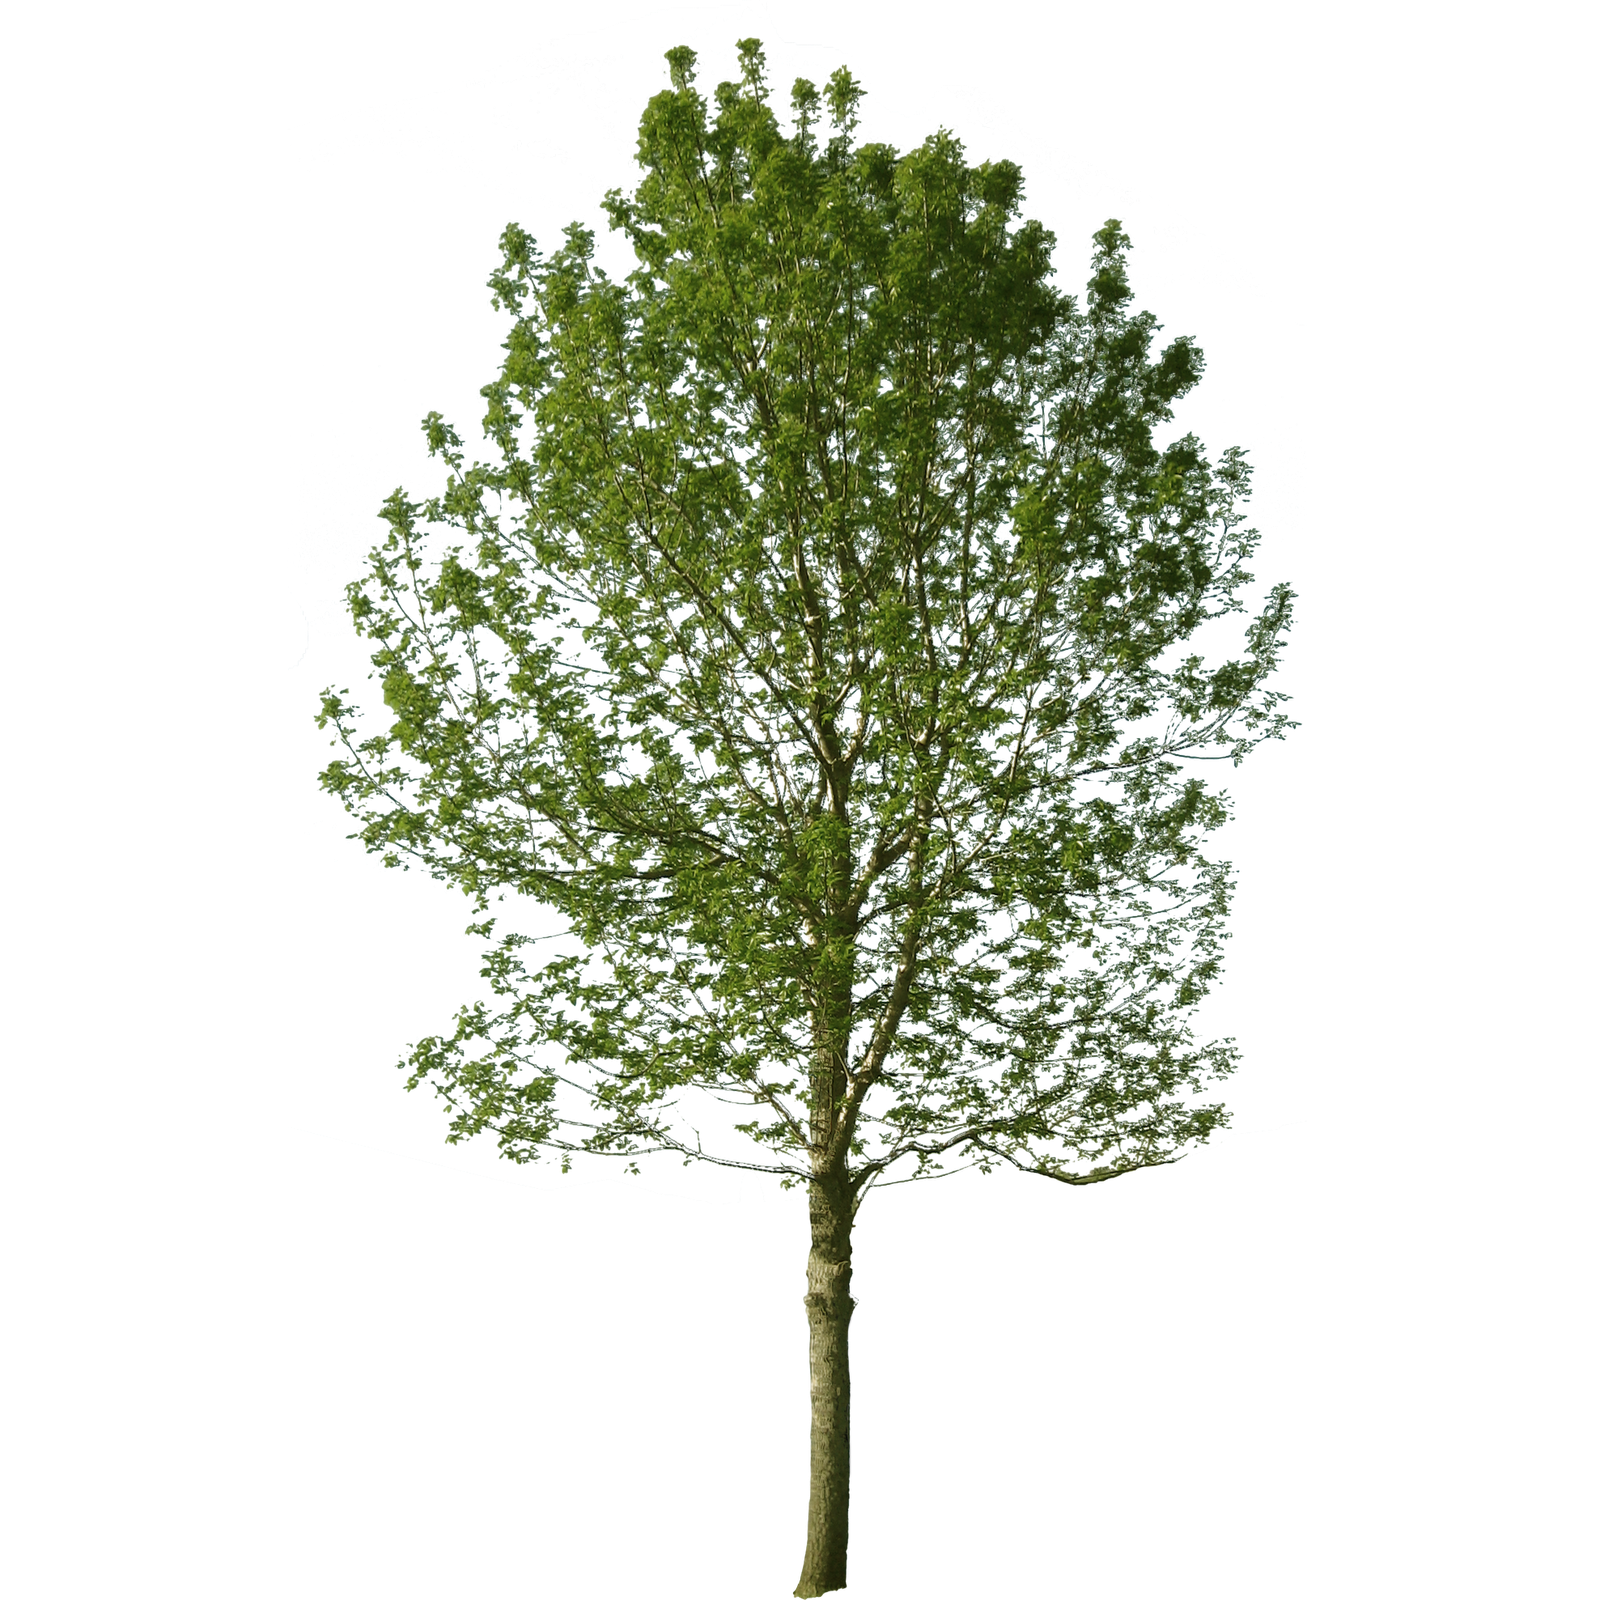 Cut out trees png. Cutout tree pinterest photoshop